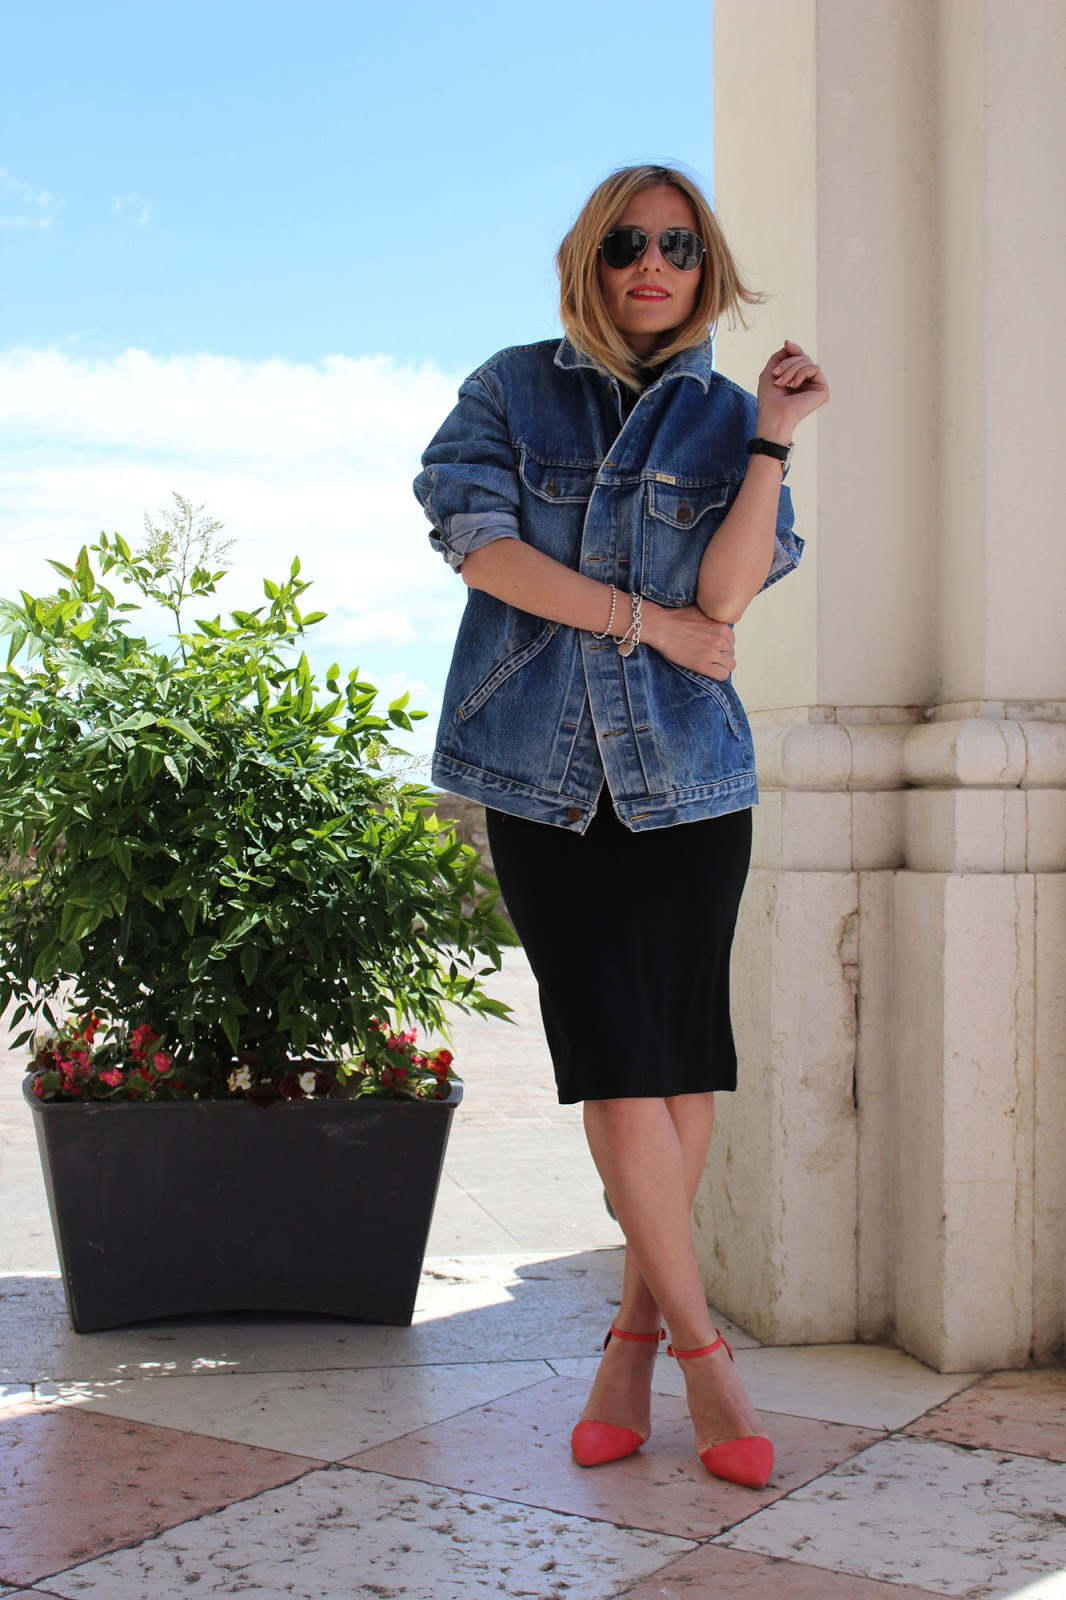 Eniwhere Fashion - denim Jacket and black dress